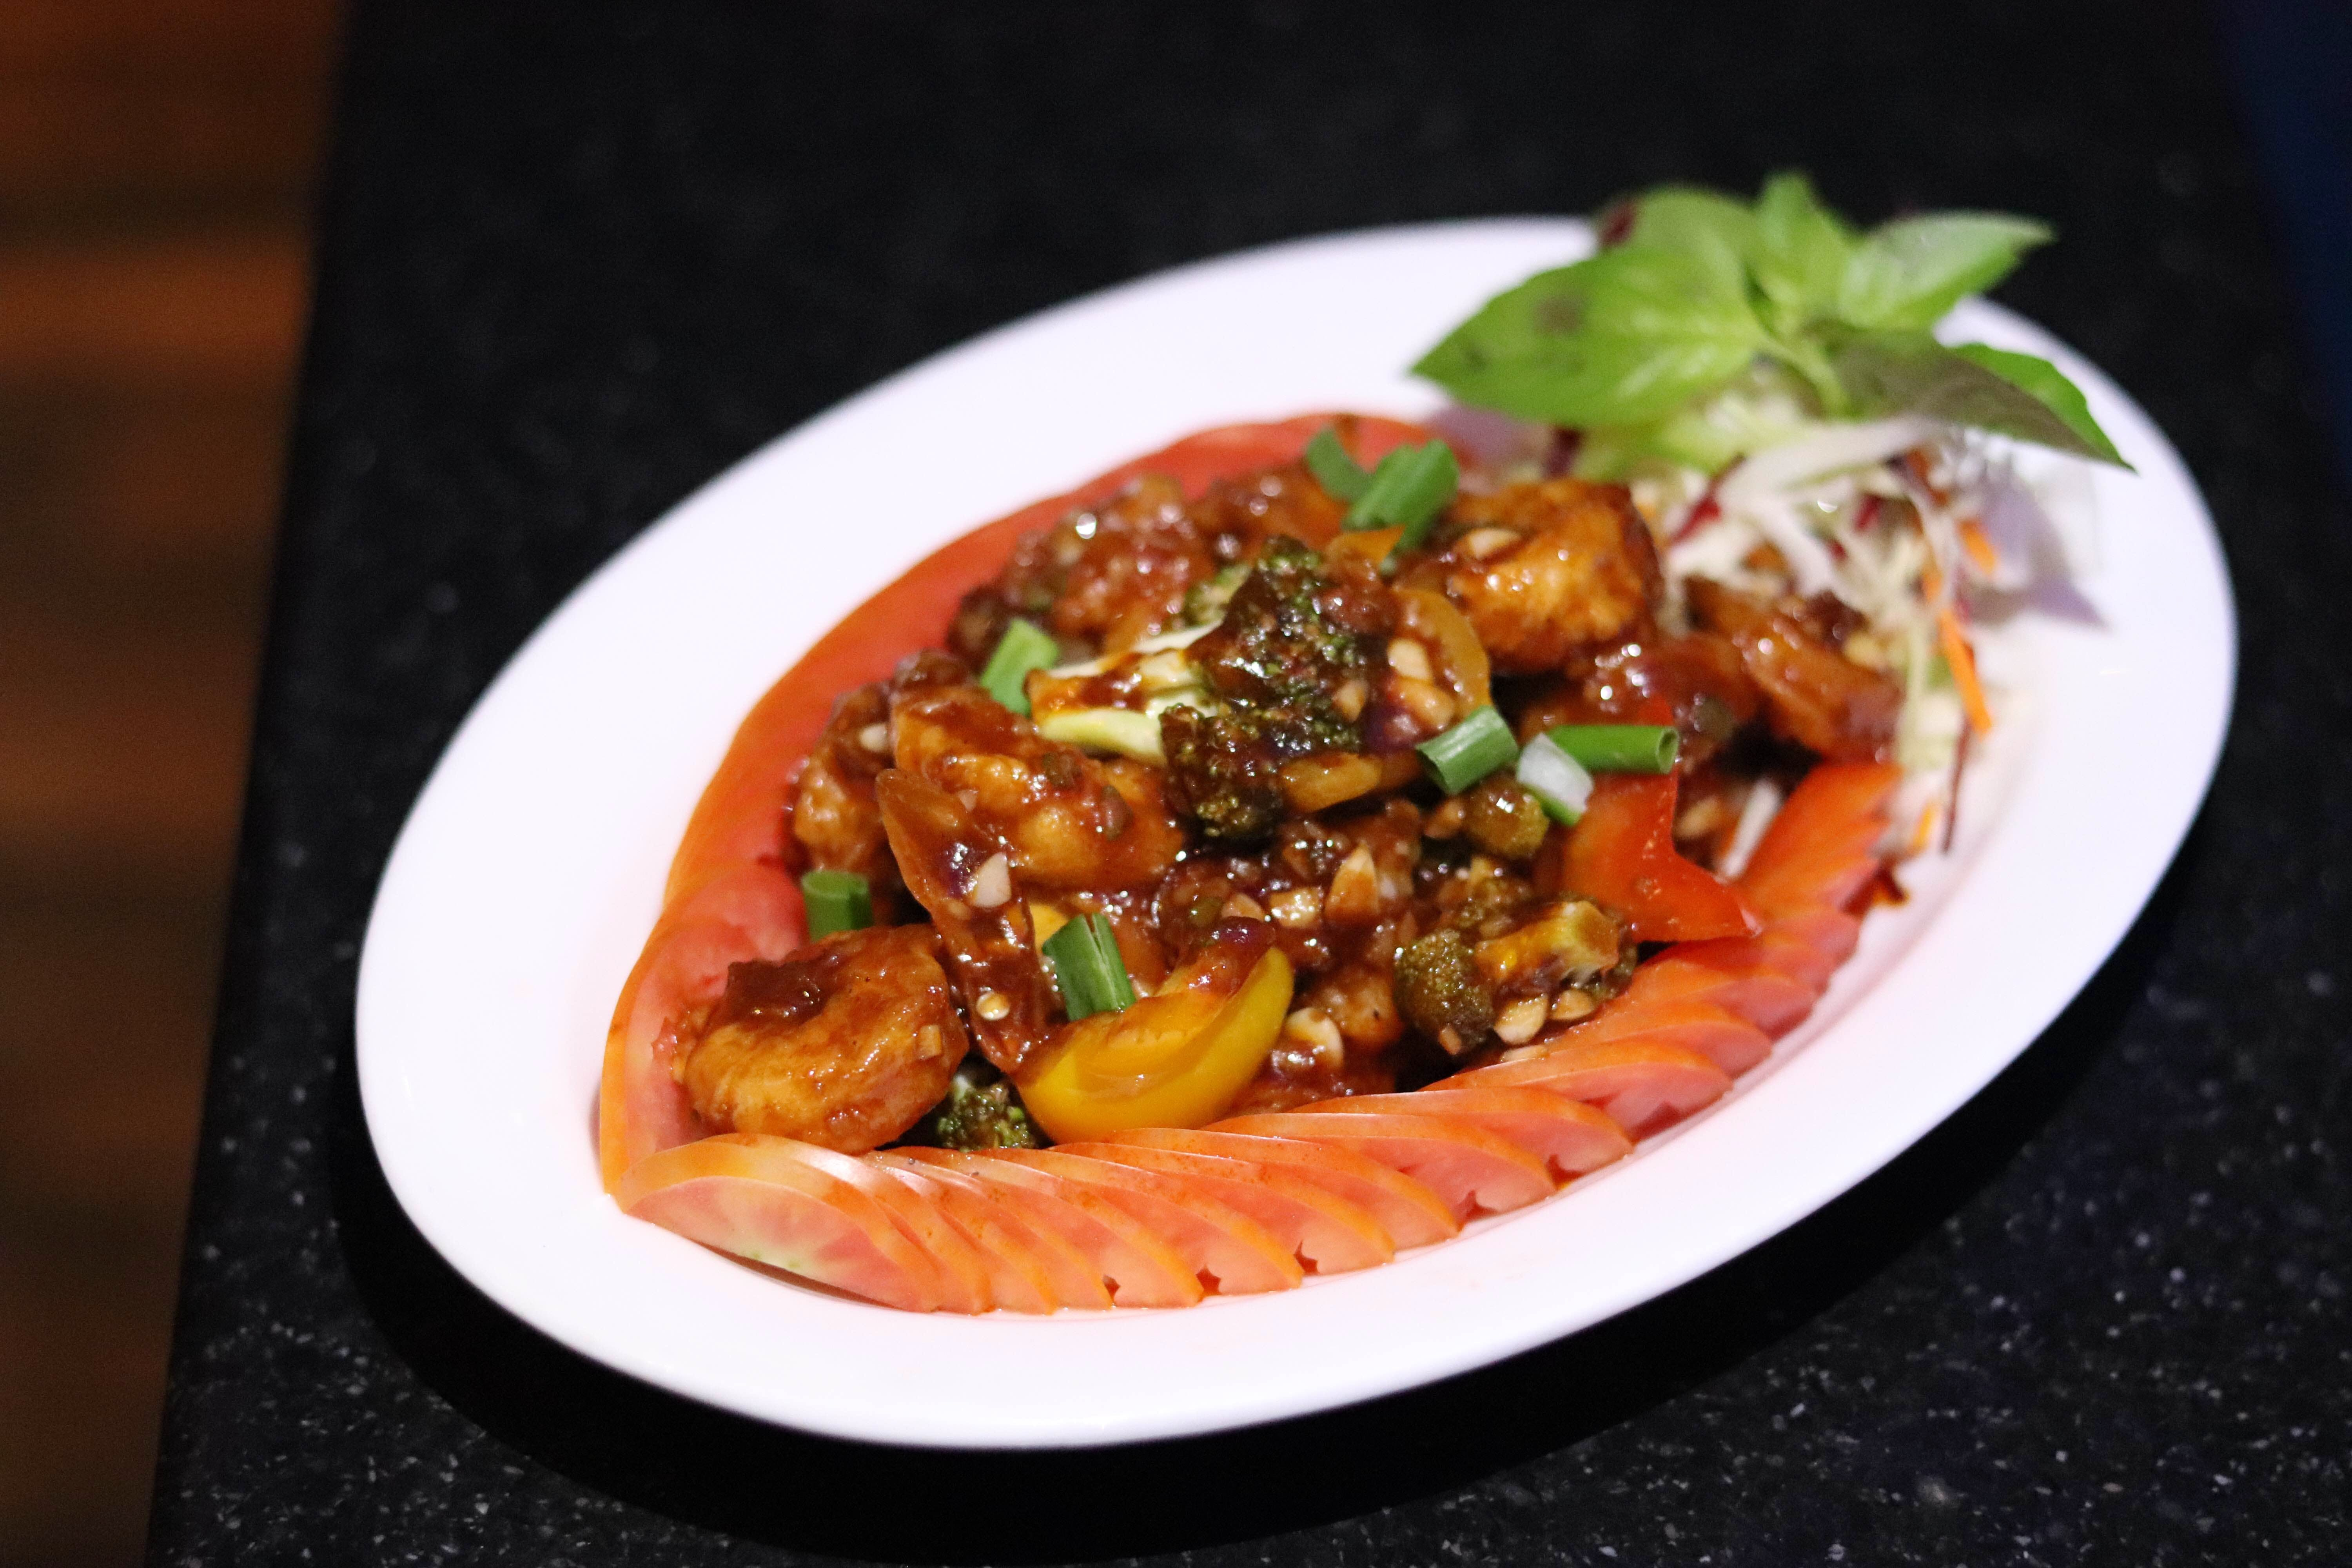 Dish,Cuisine,Food,Ingredient,Meat,Produce,Recipe,Caponata,Sweet and sour,Curry